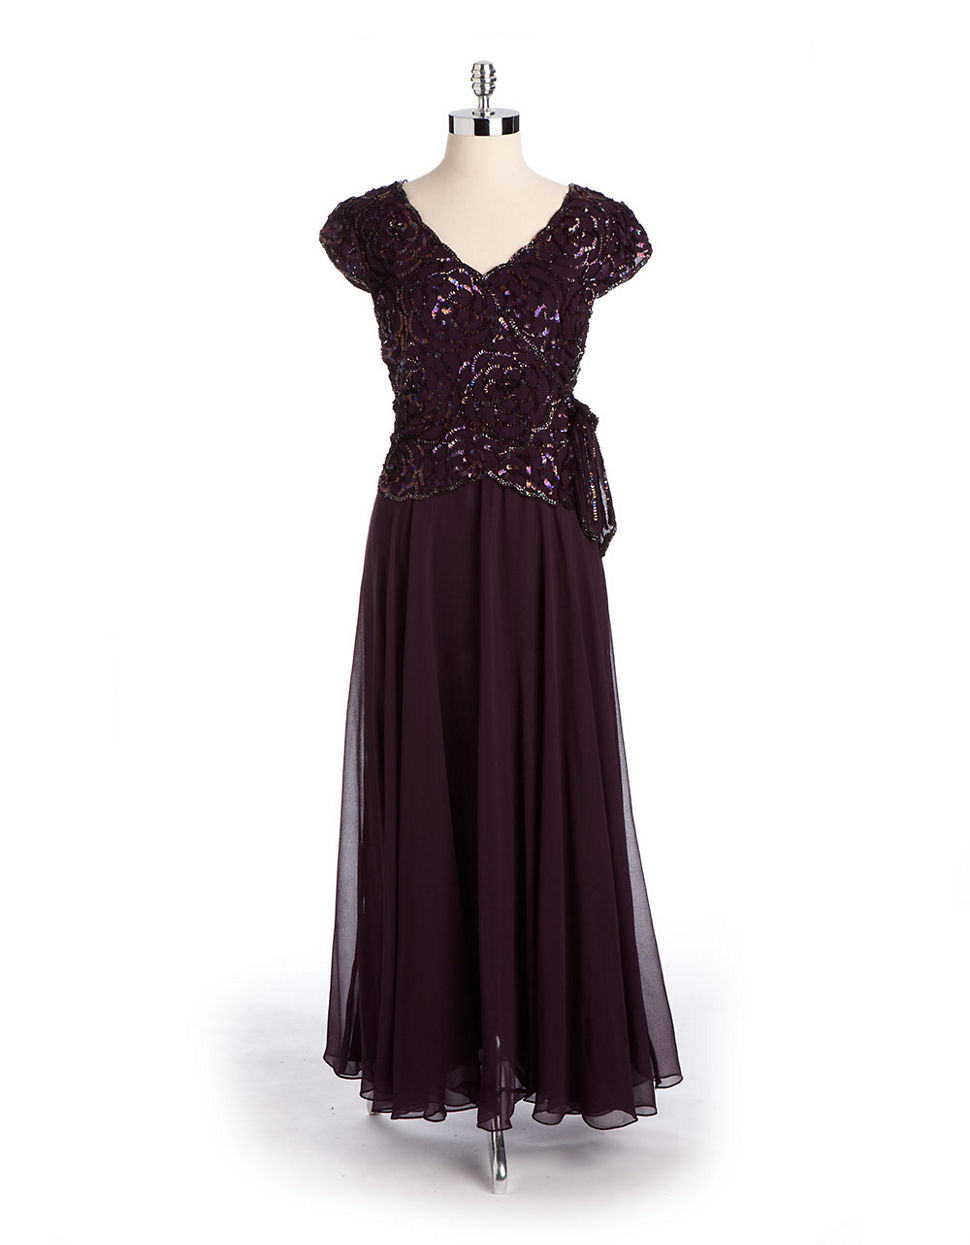 Jkara Evening Dresses - Formal Dresses